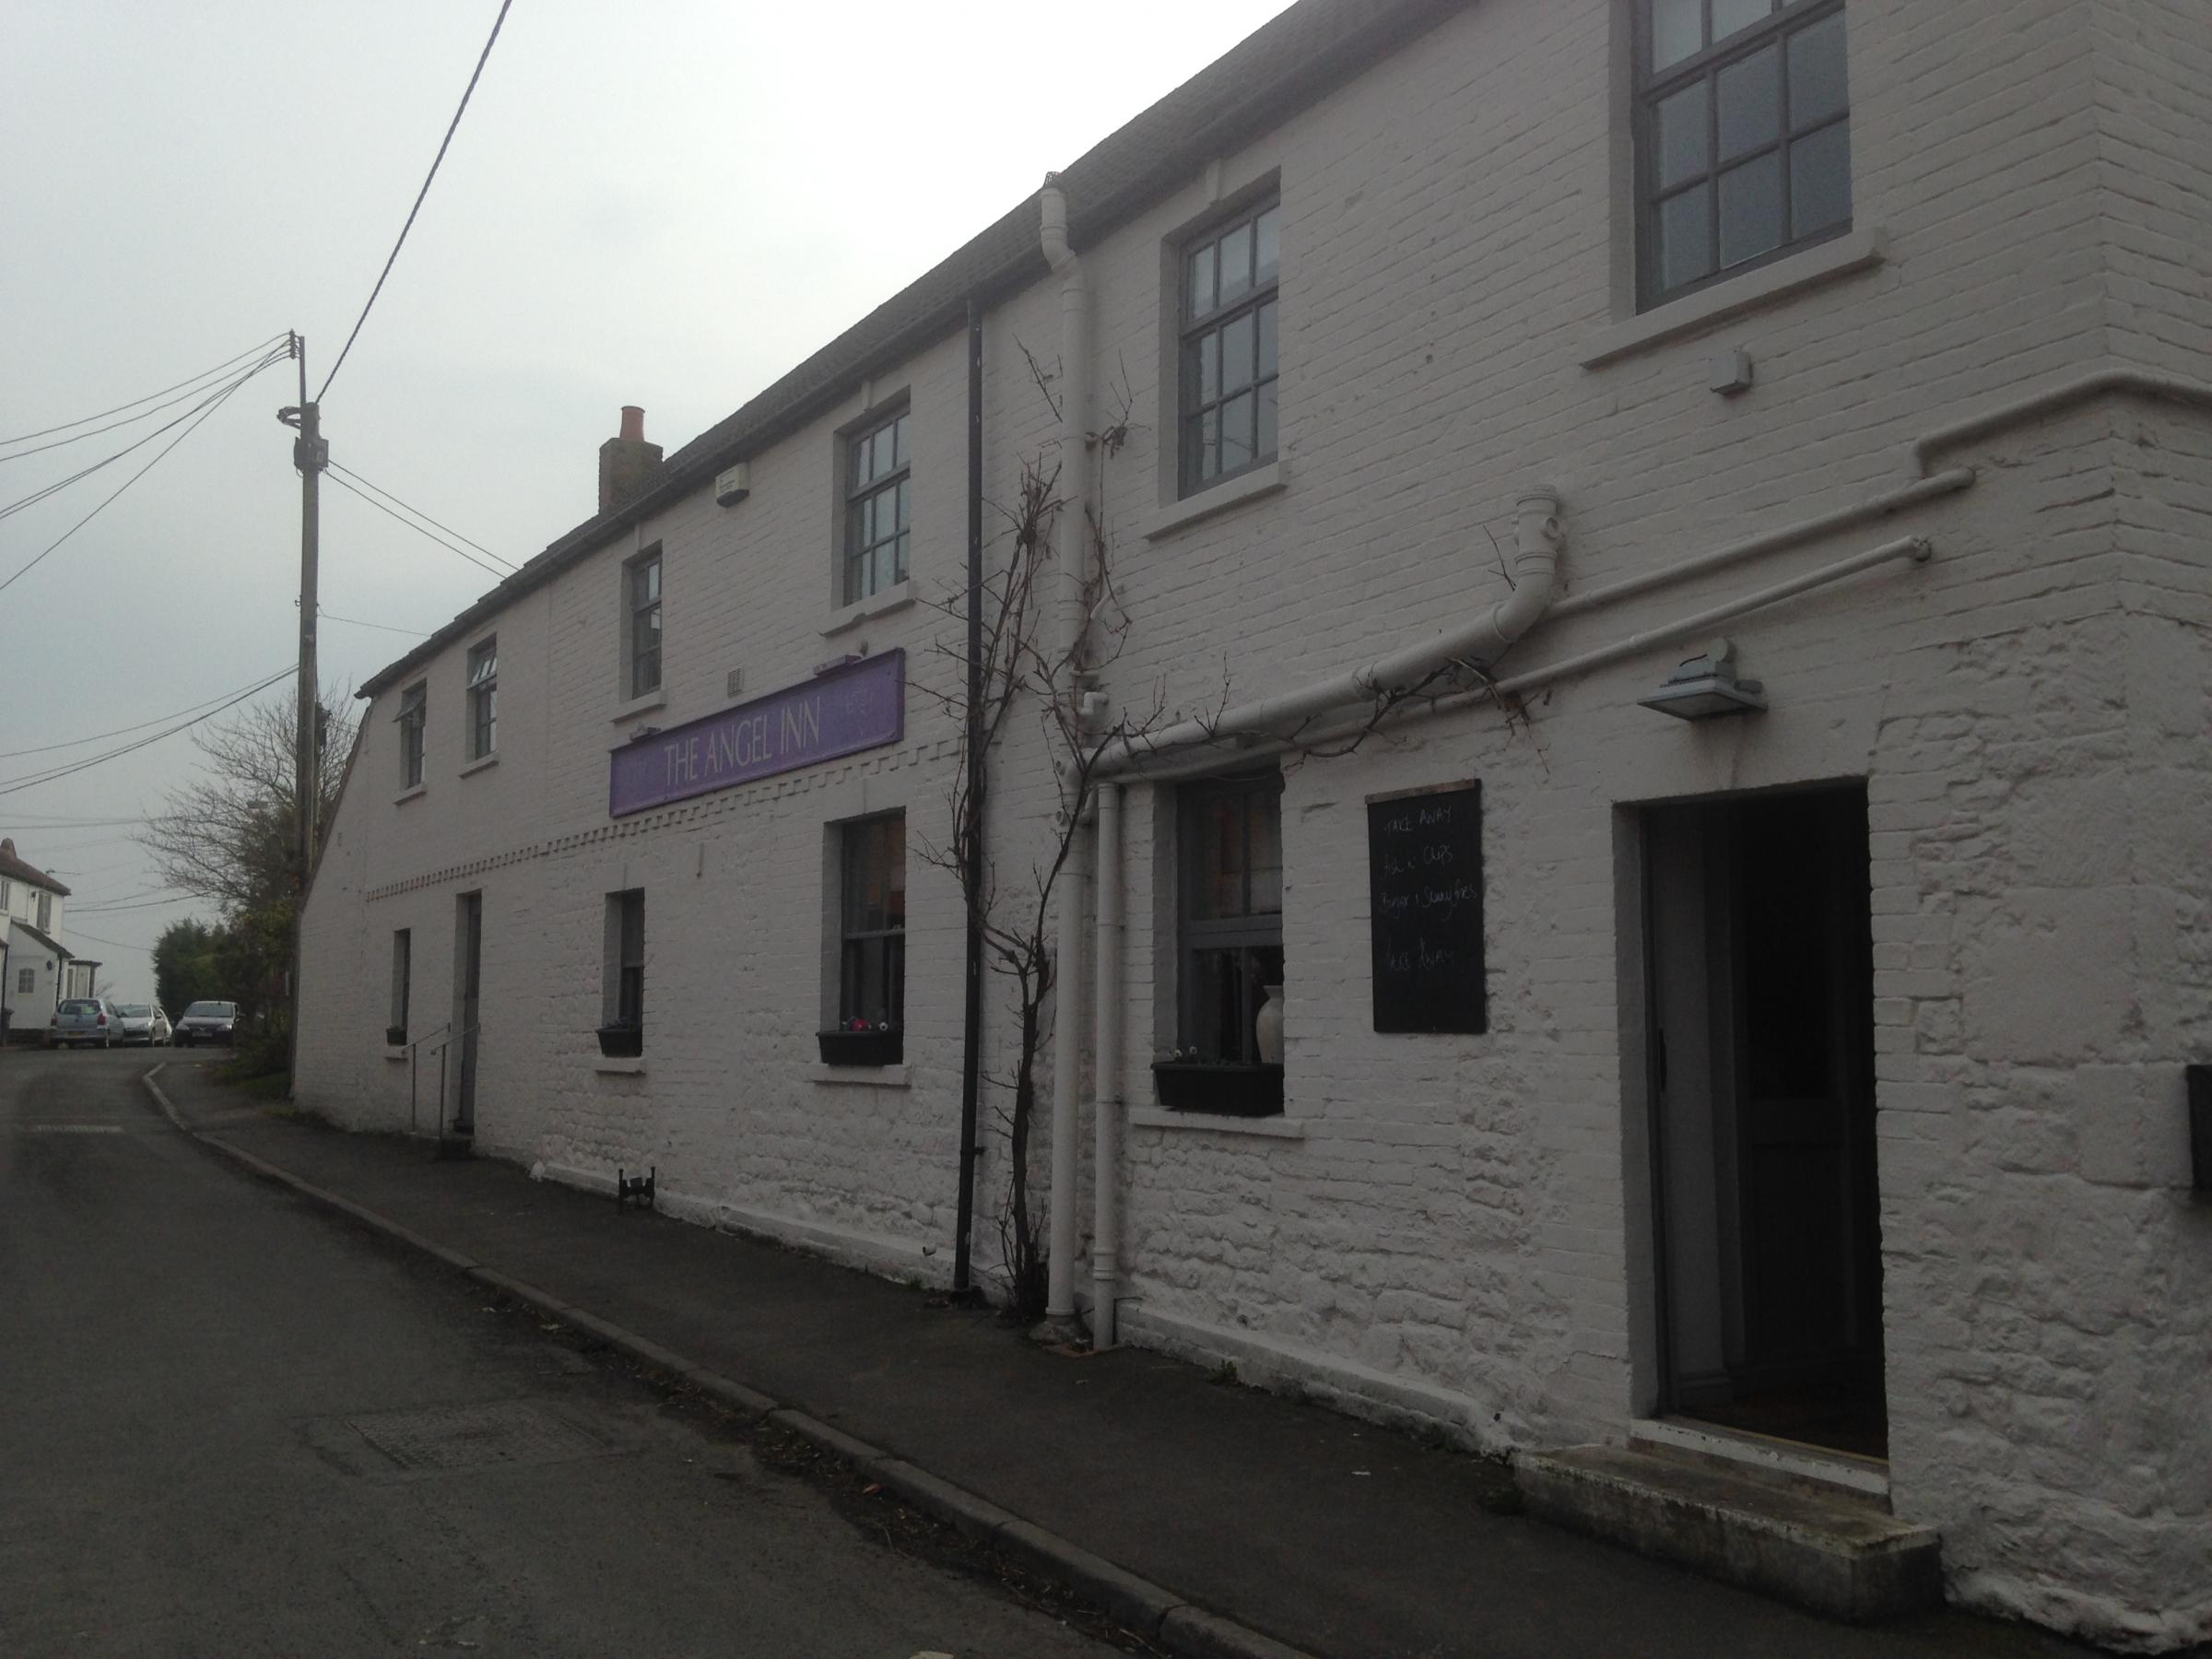 The Angel Inn, Upton Scudamore